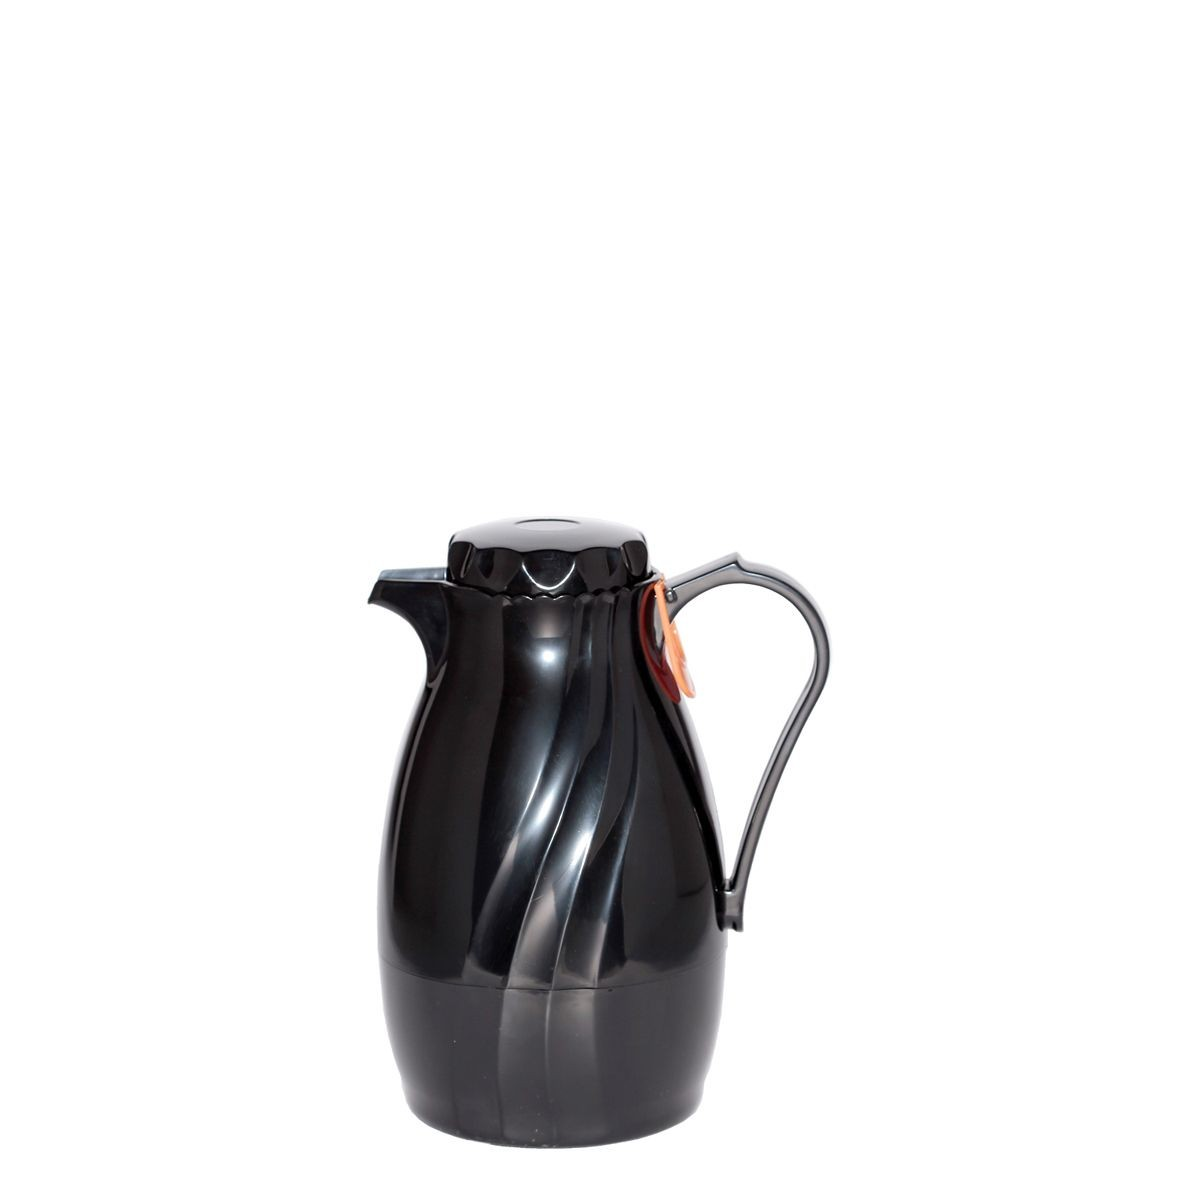 Service Ideas TNS40BL Twist N' Serv Black Server, 1.2 Liter